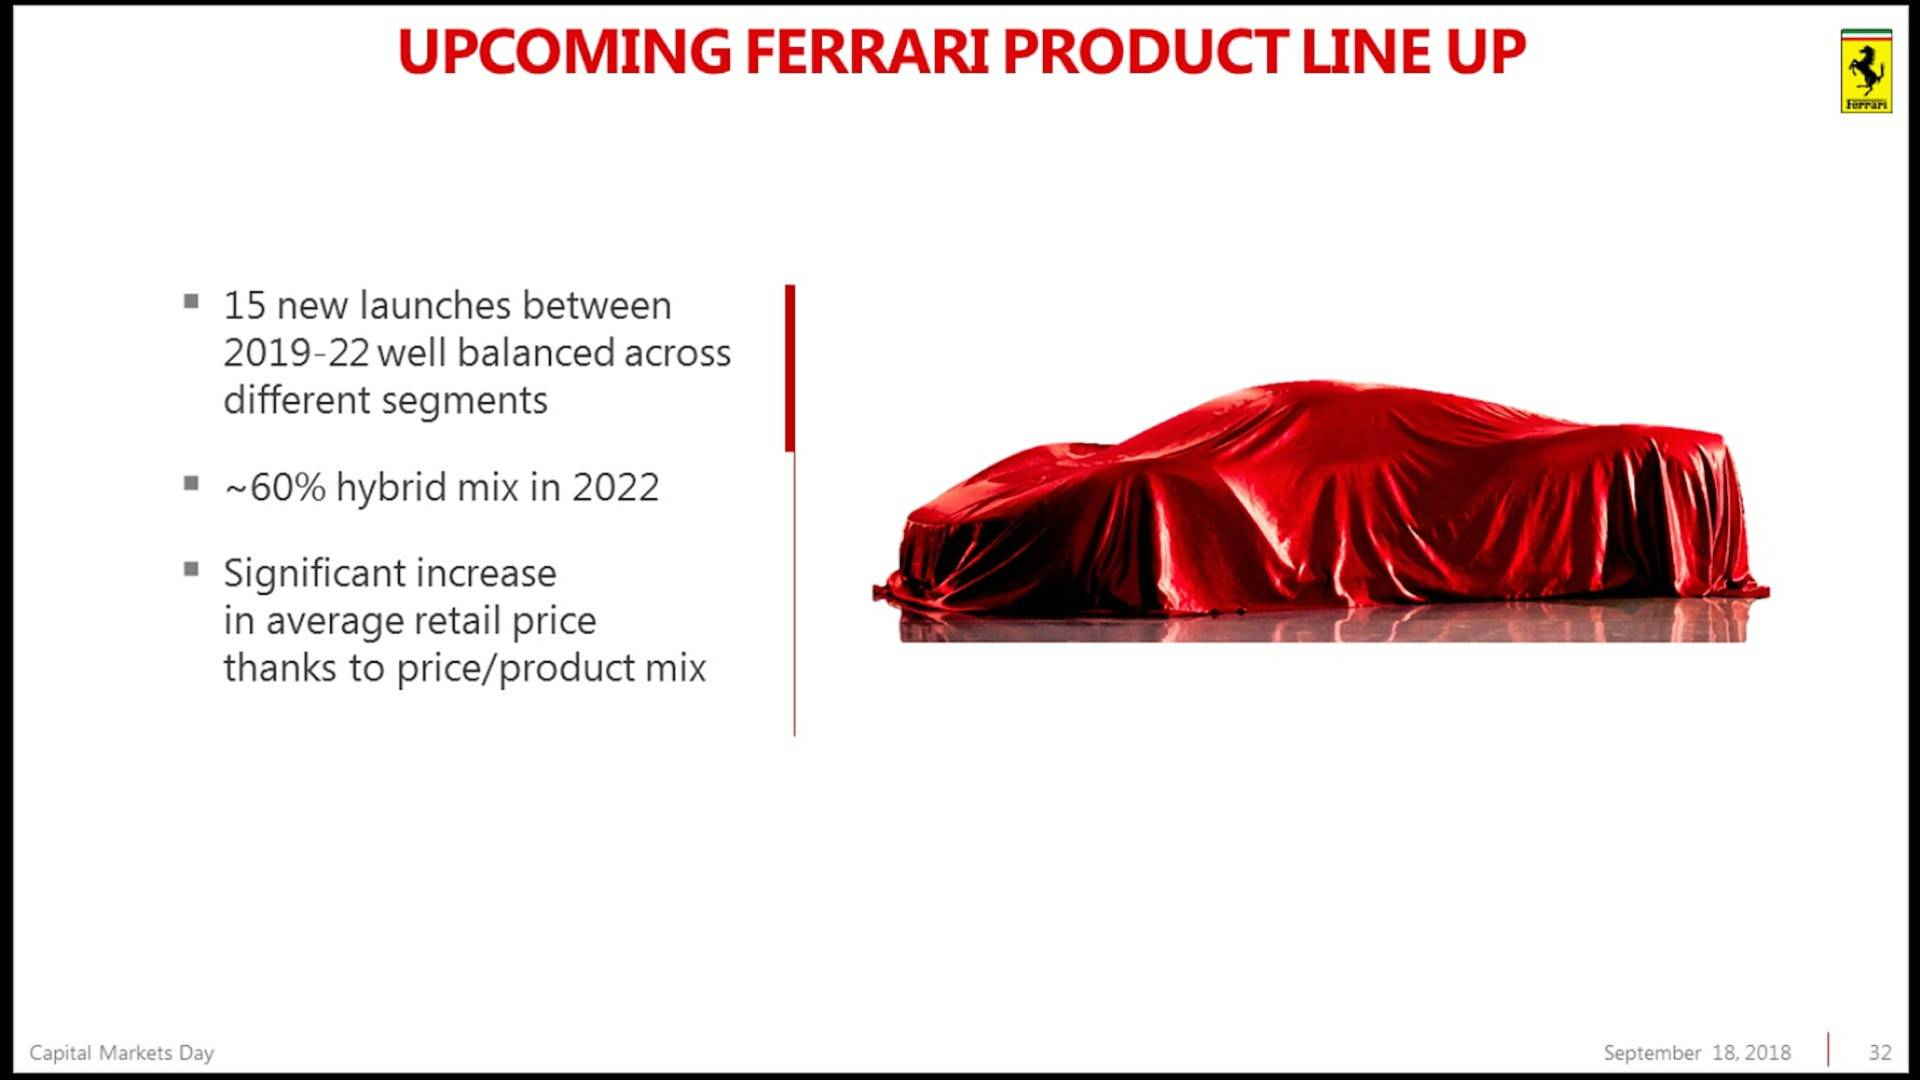 Piano Industriale Ferrari 2018-2022 (29)